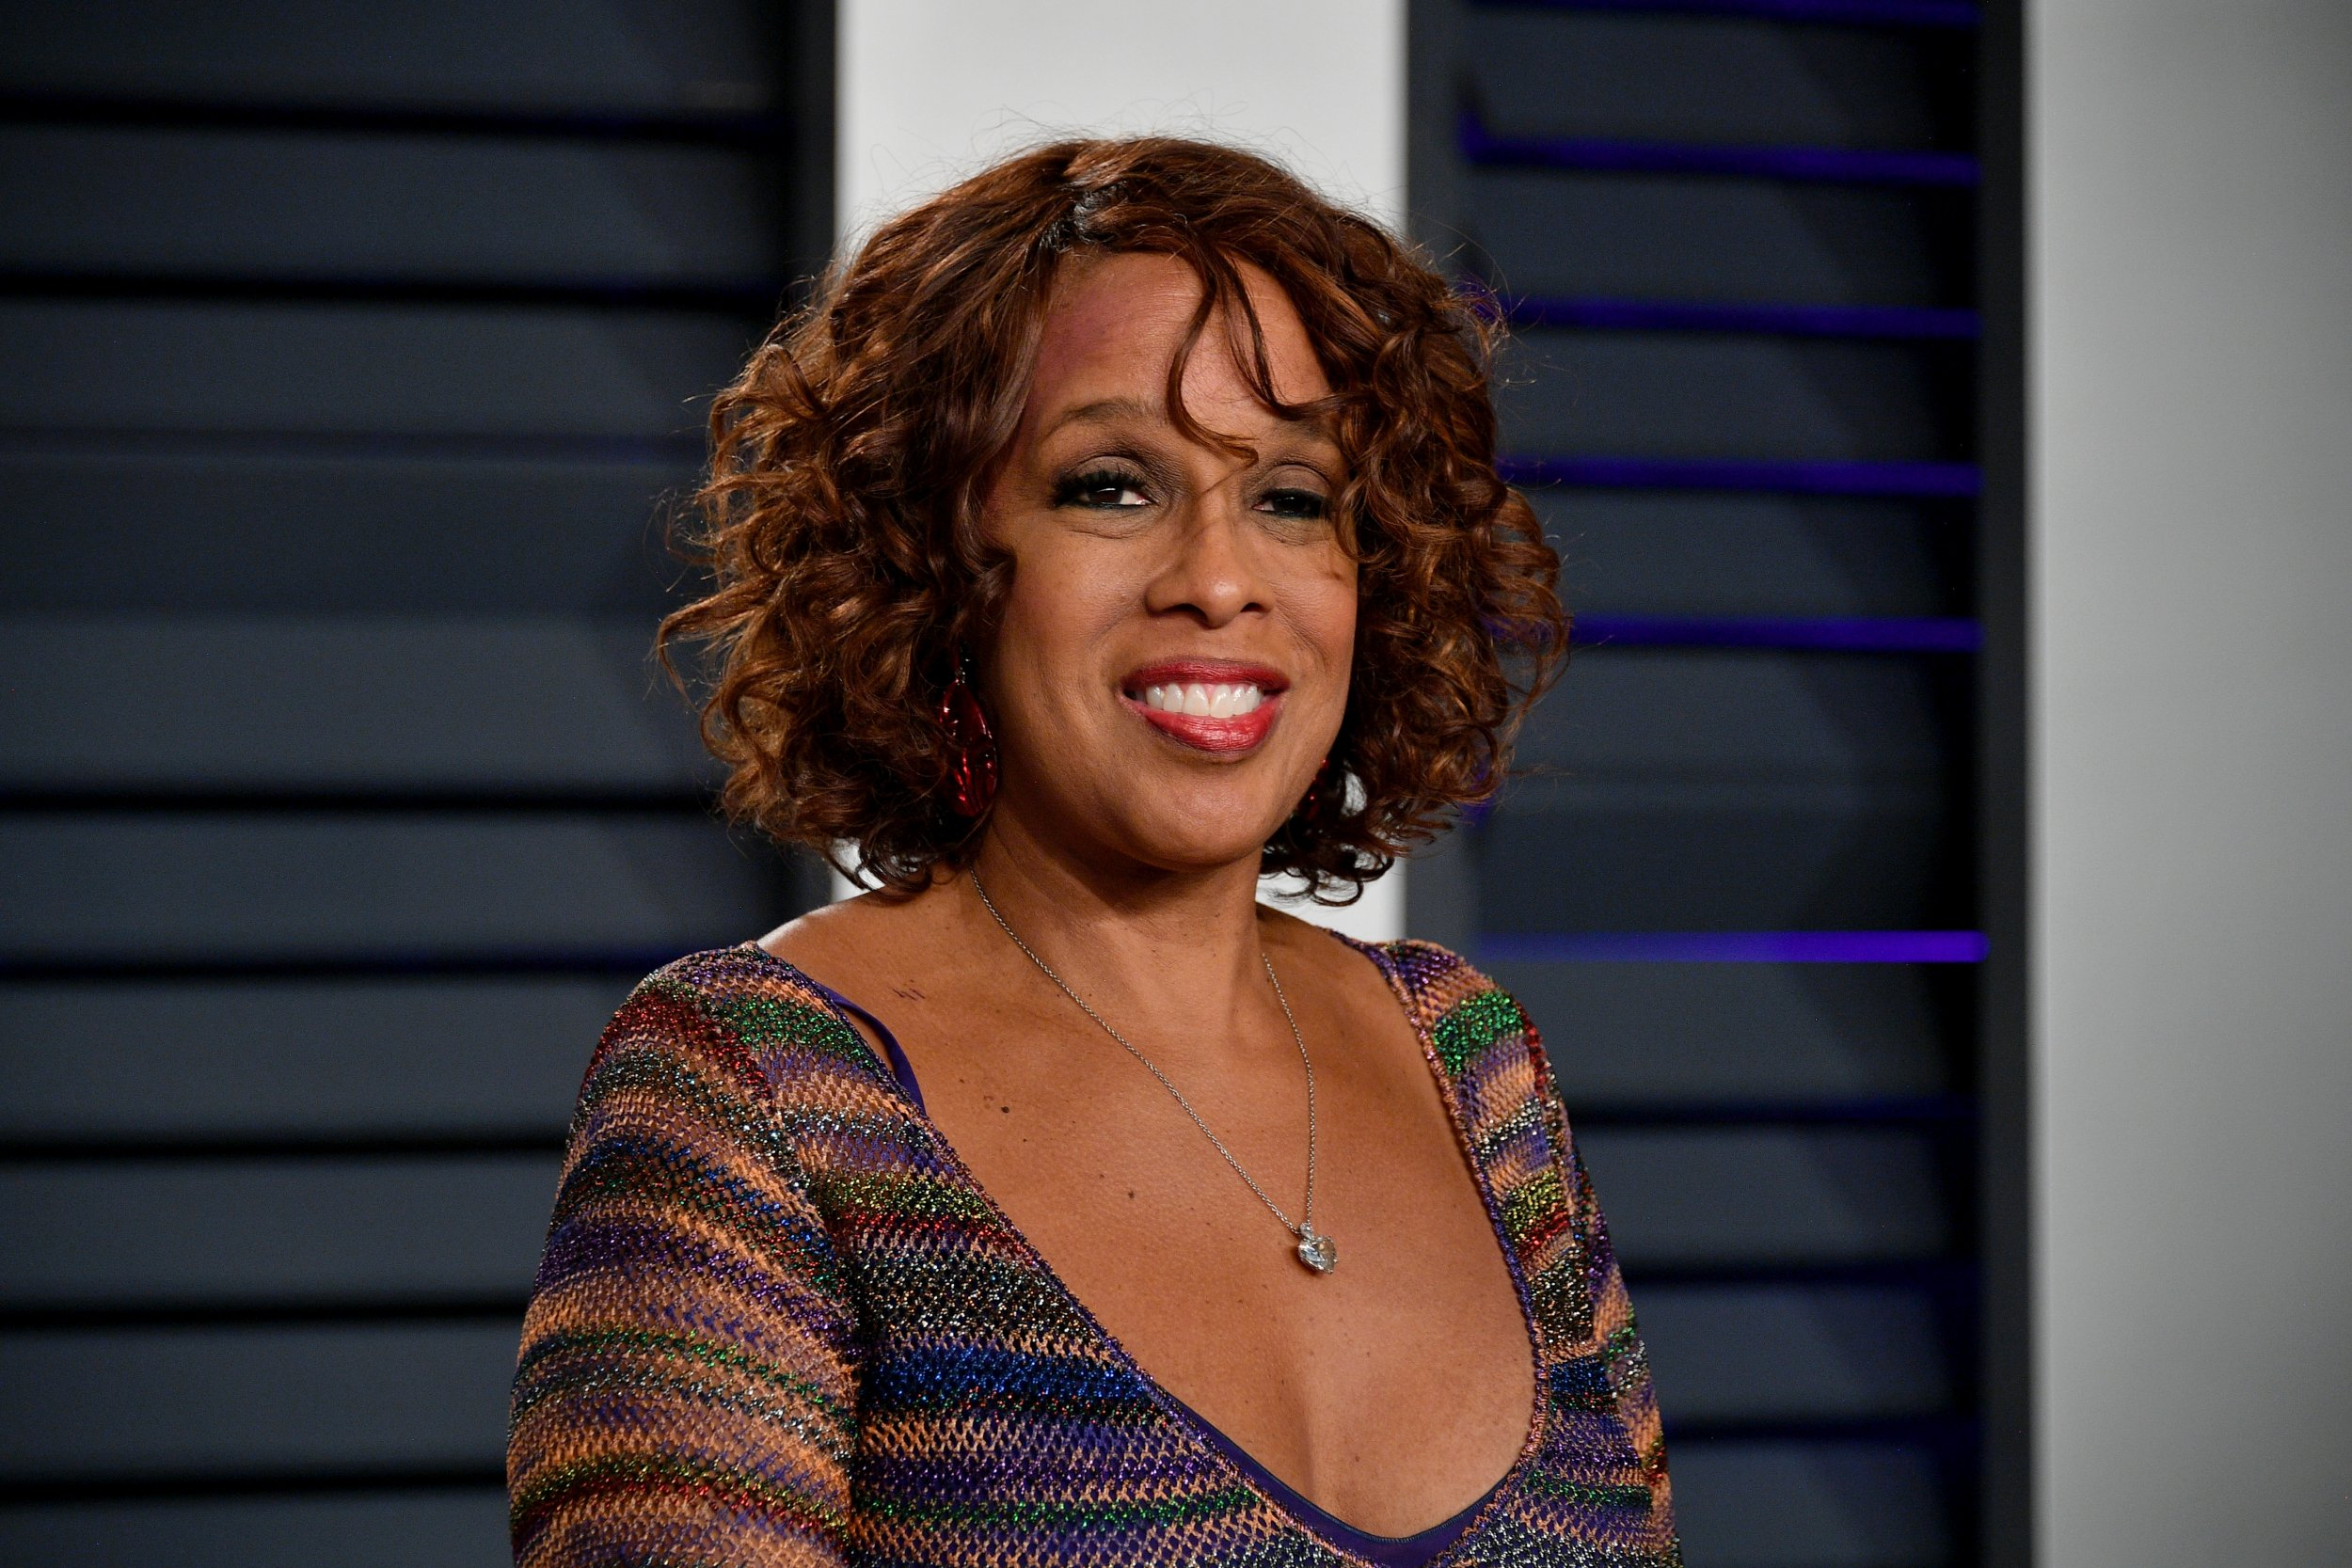 Gayle King on R. Kelly interview